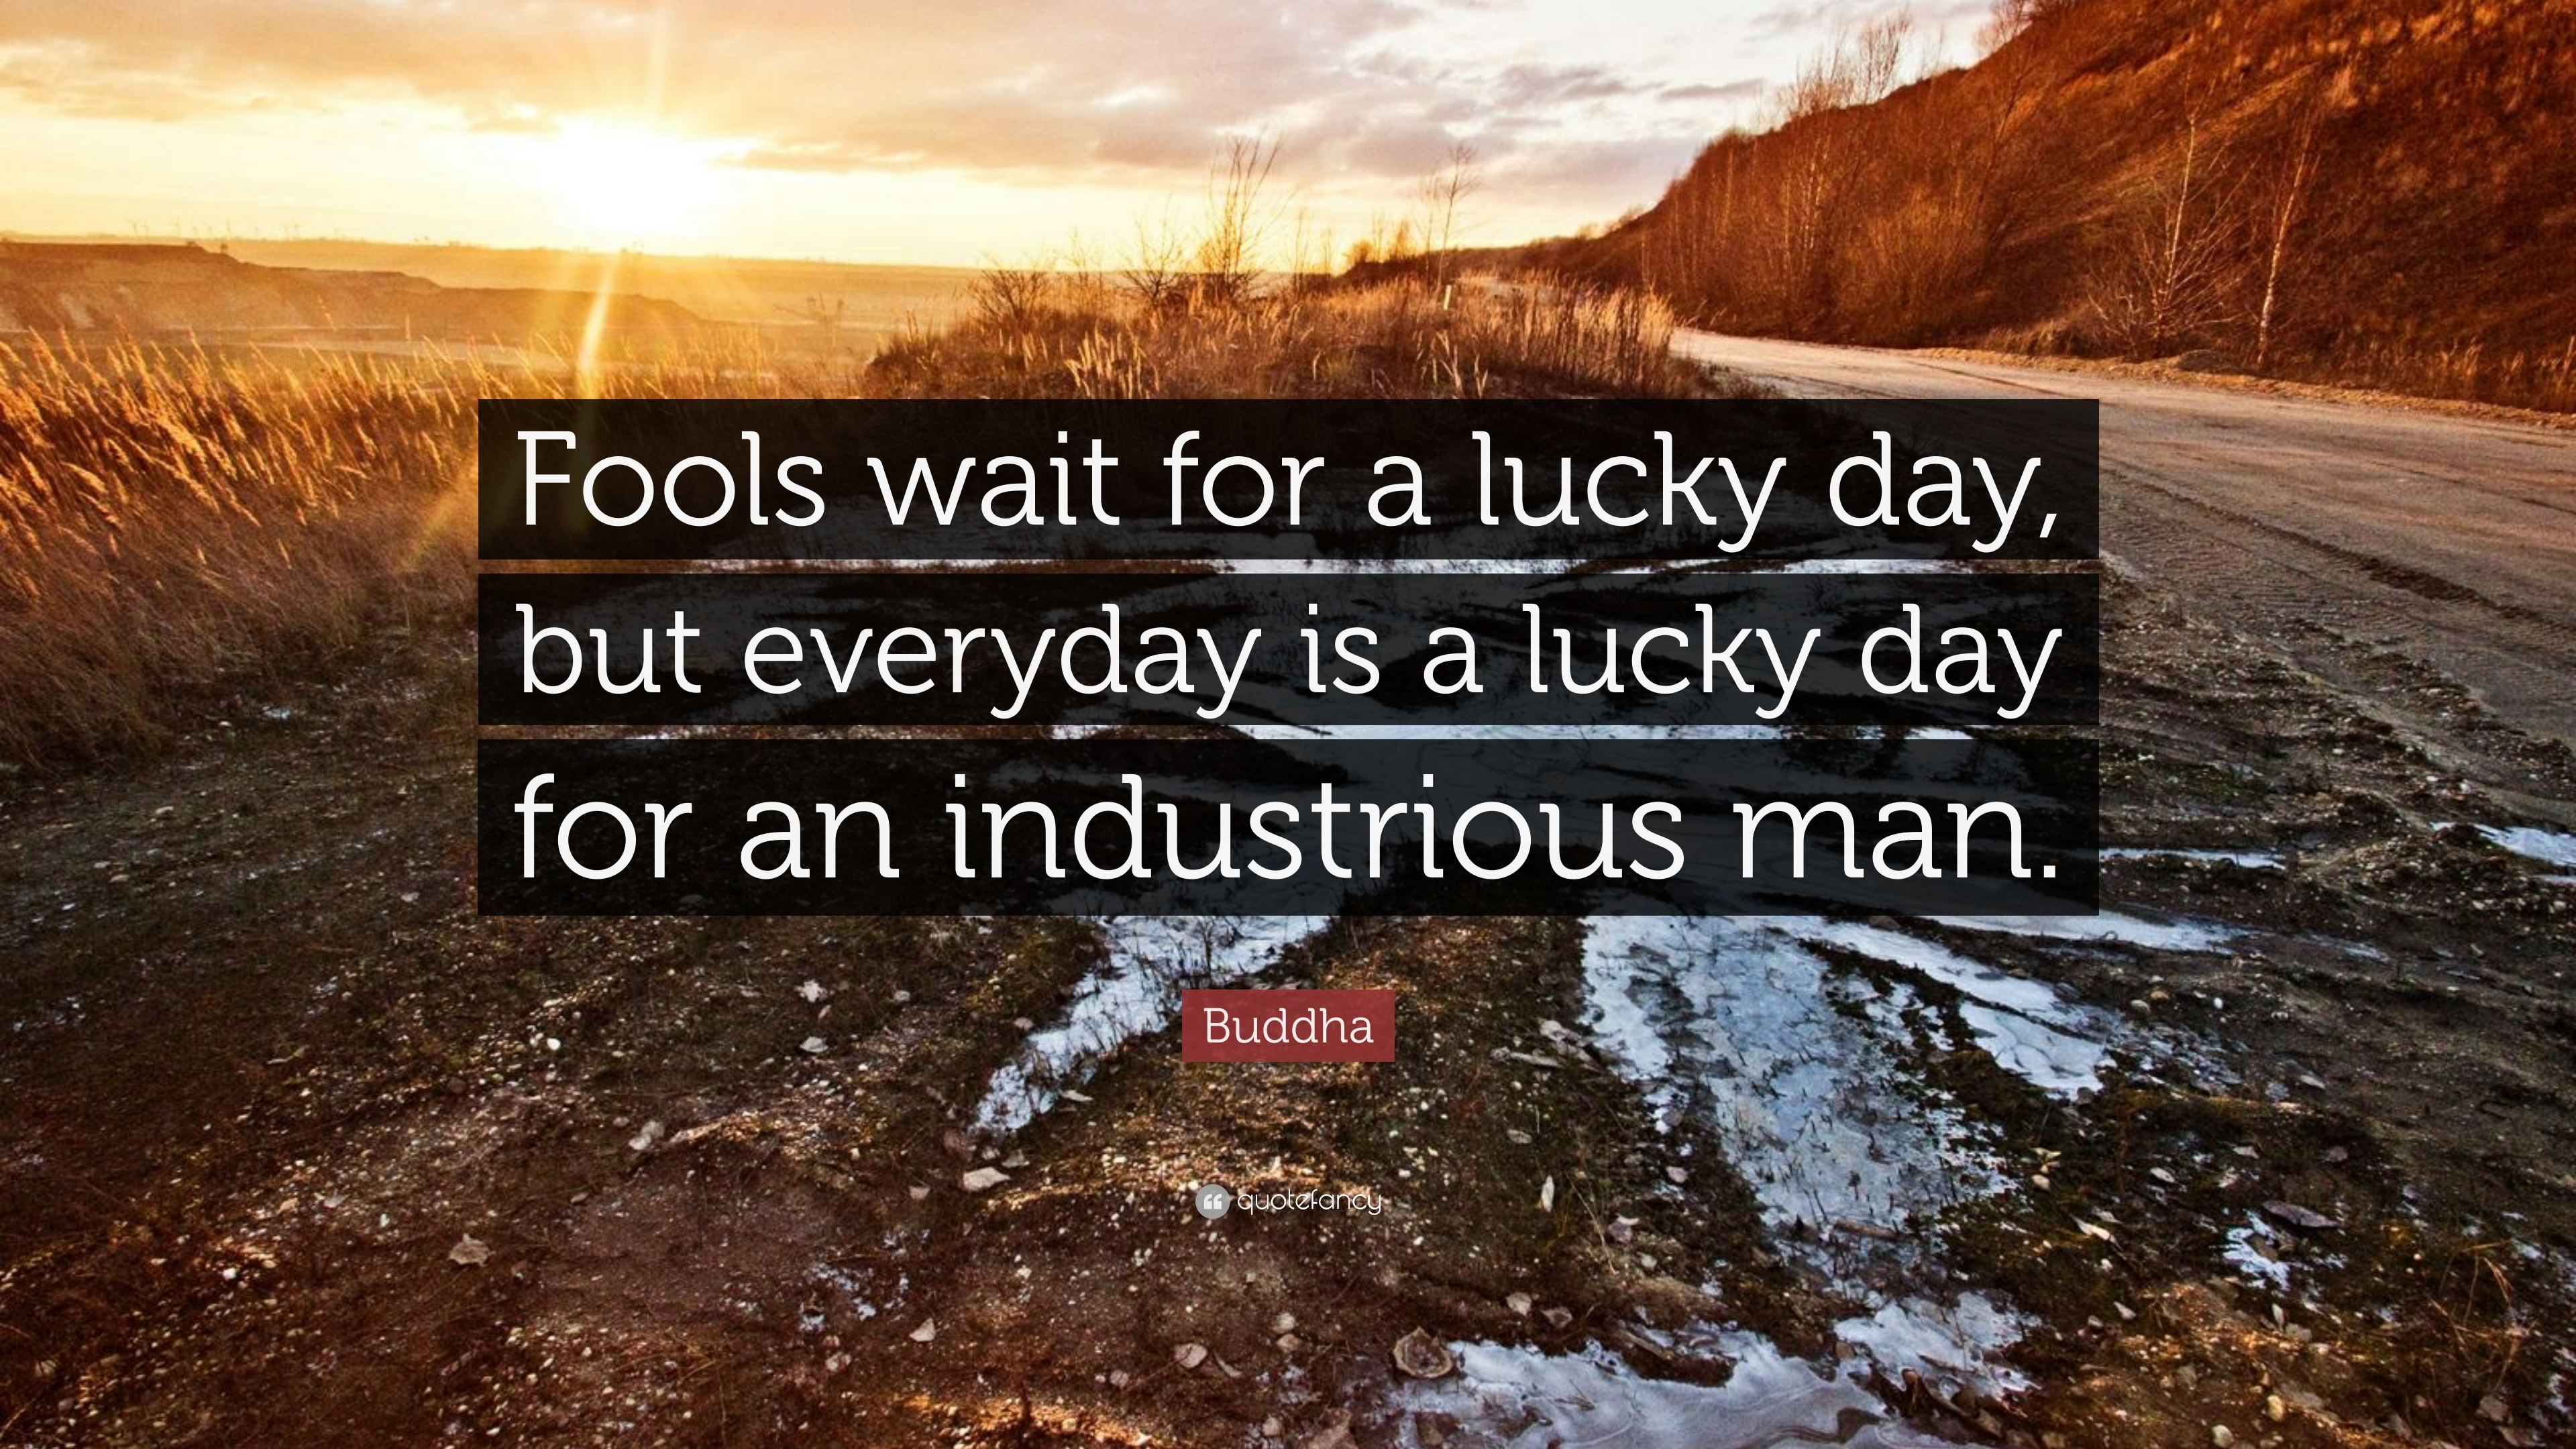 Buddha Quote Fools Wait For A Lucky Day But Everyday Is A Lucky